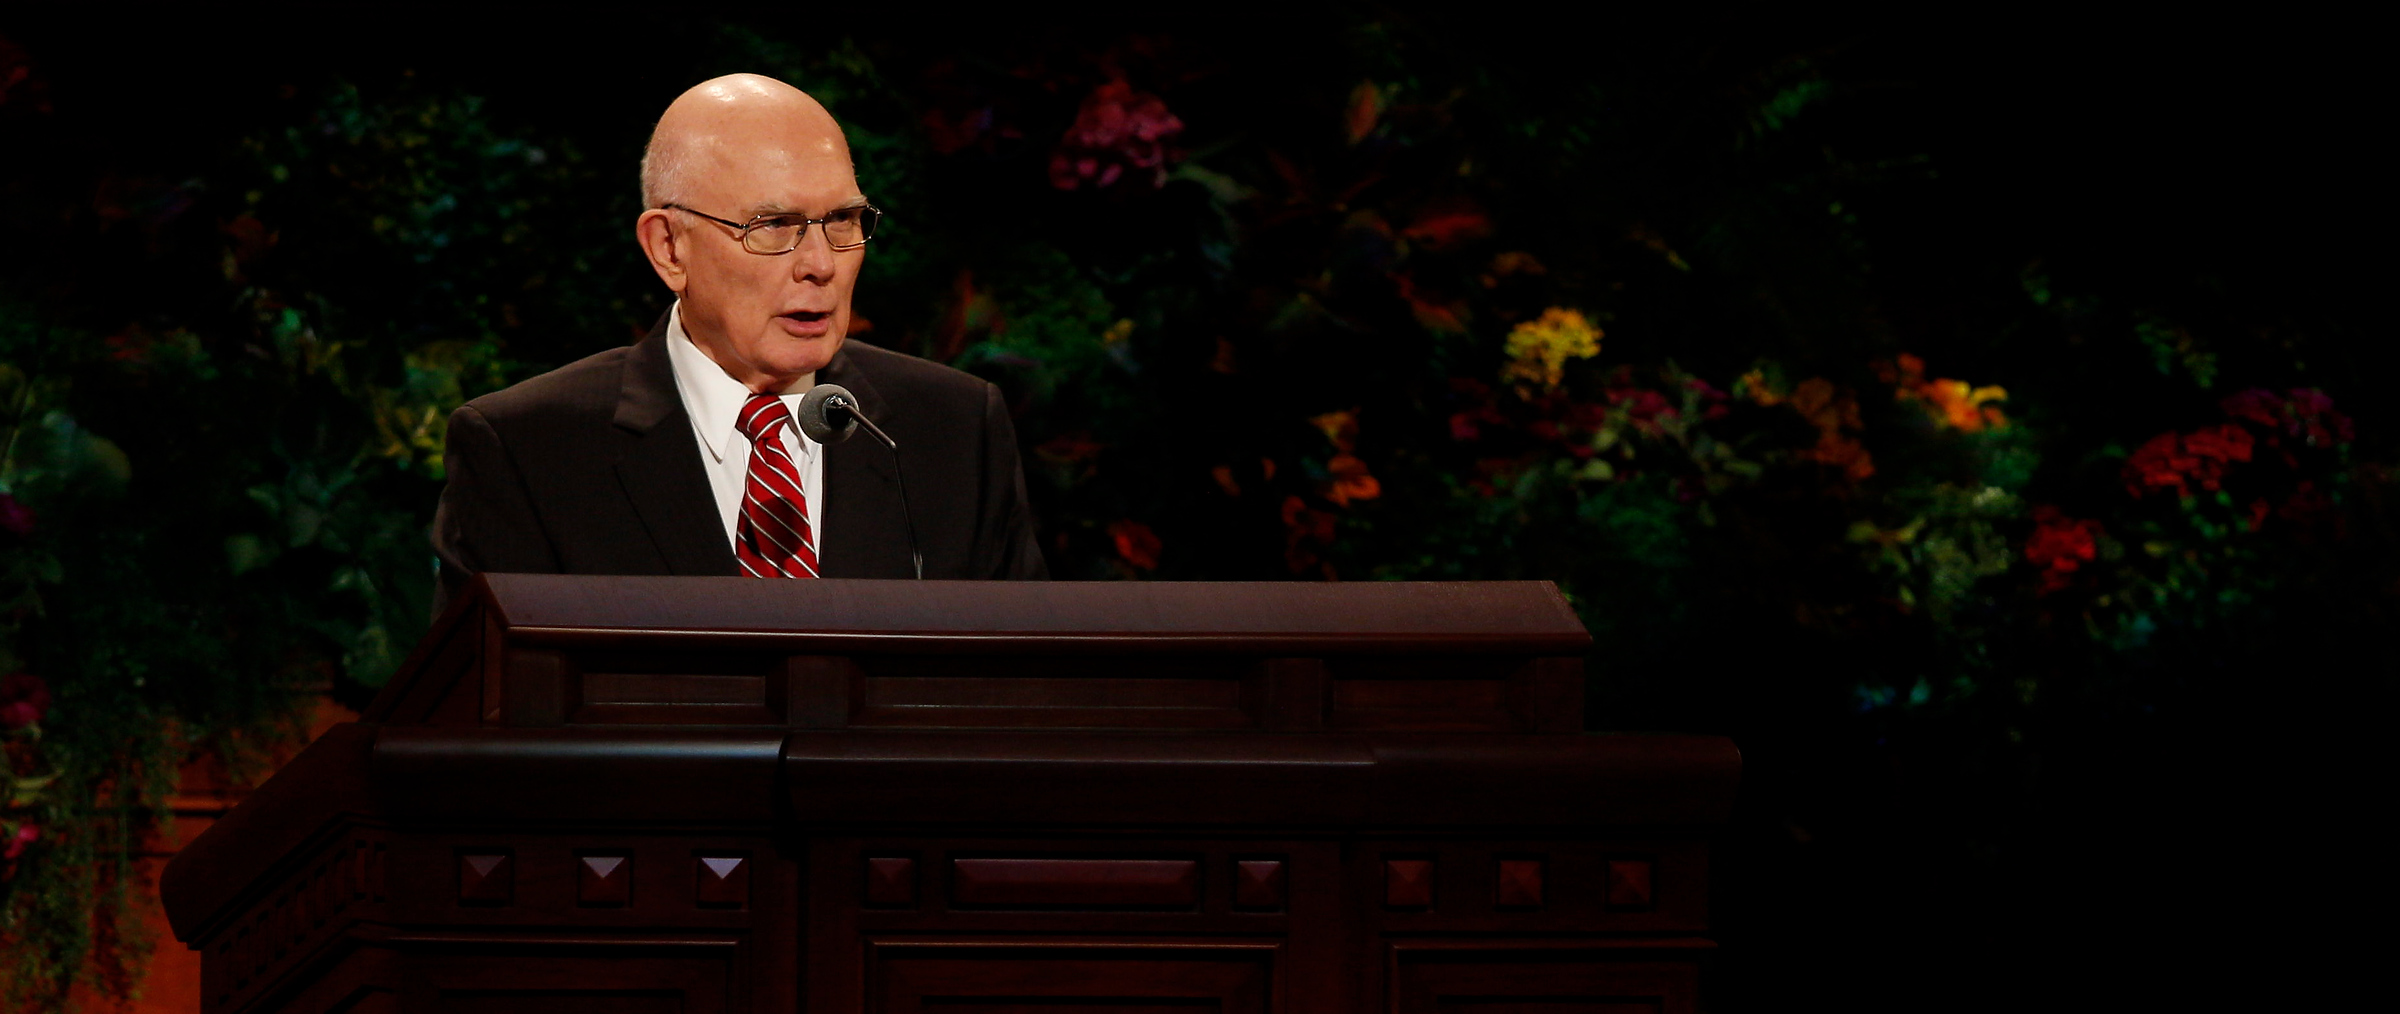 Elder Dallin H. Oaks of the Quorum of the Twelve Apostles speaks at the Saturday afternoon session of general conference, 4 October 2014. Mormon Newsroom)